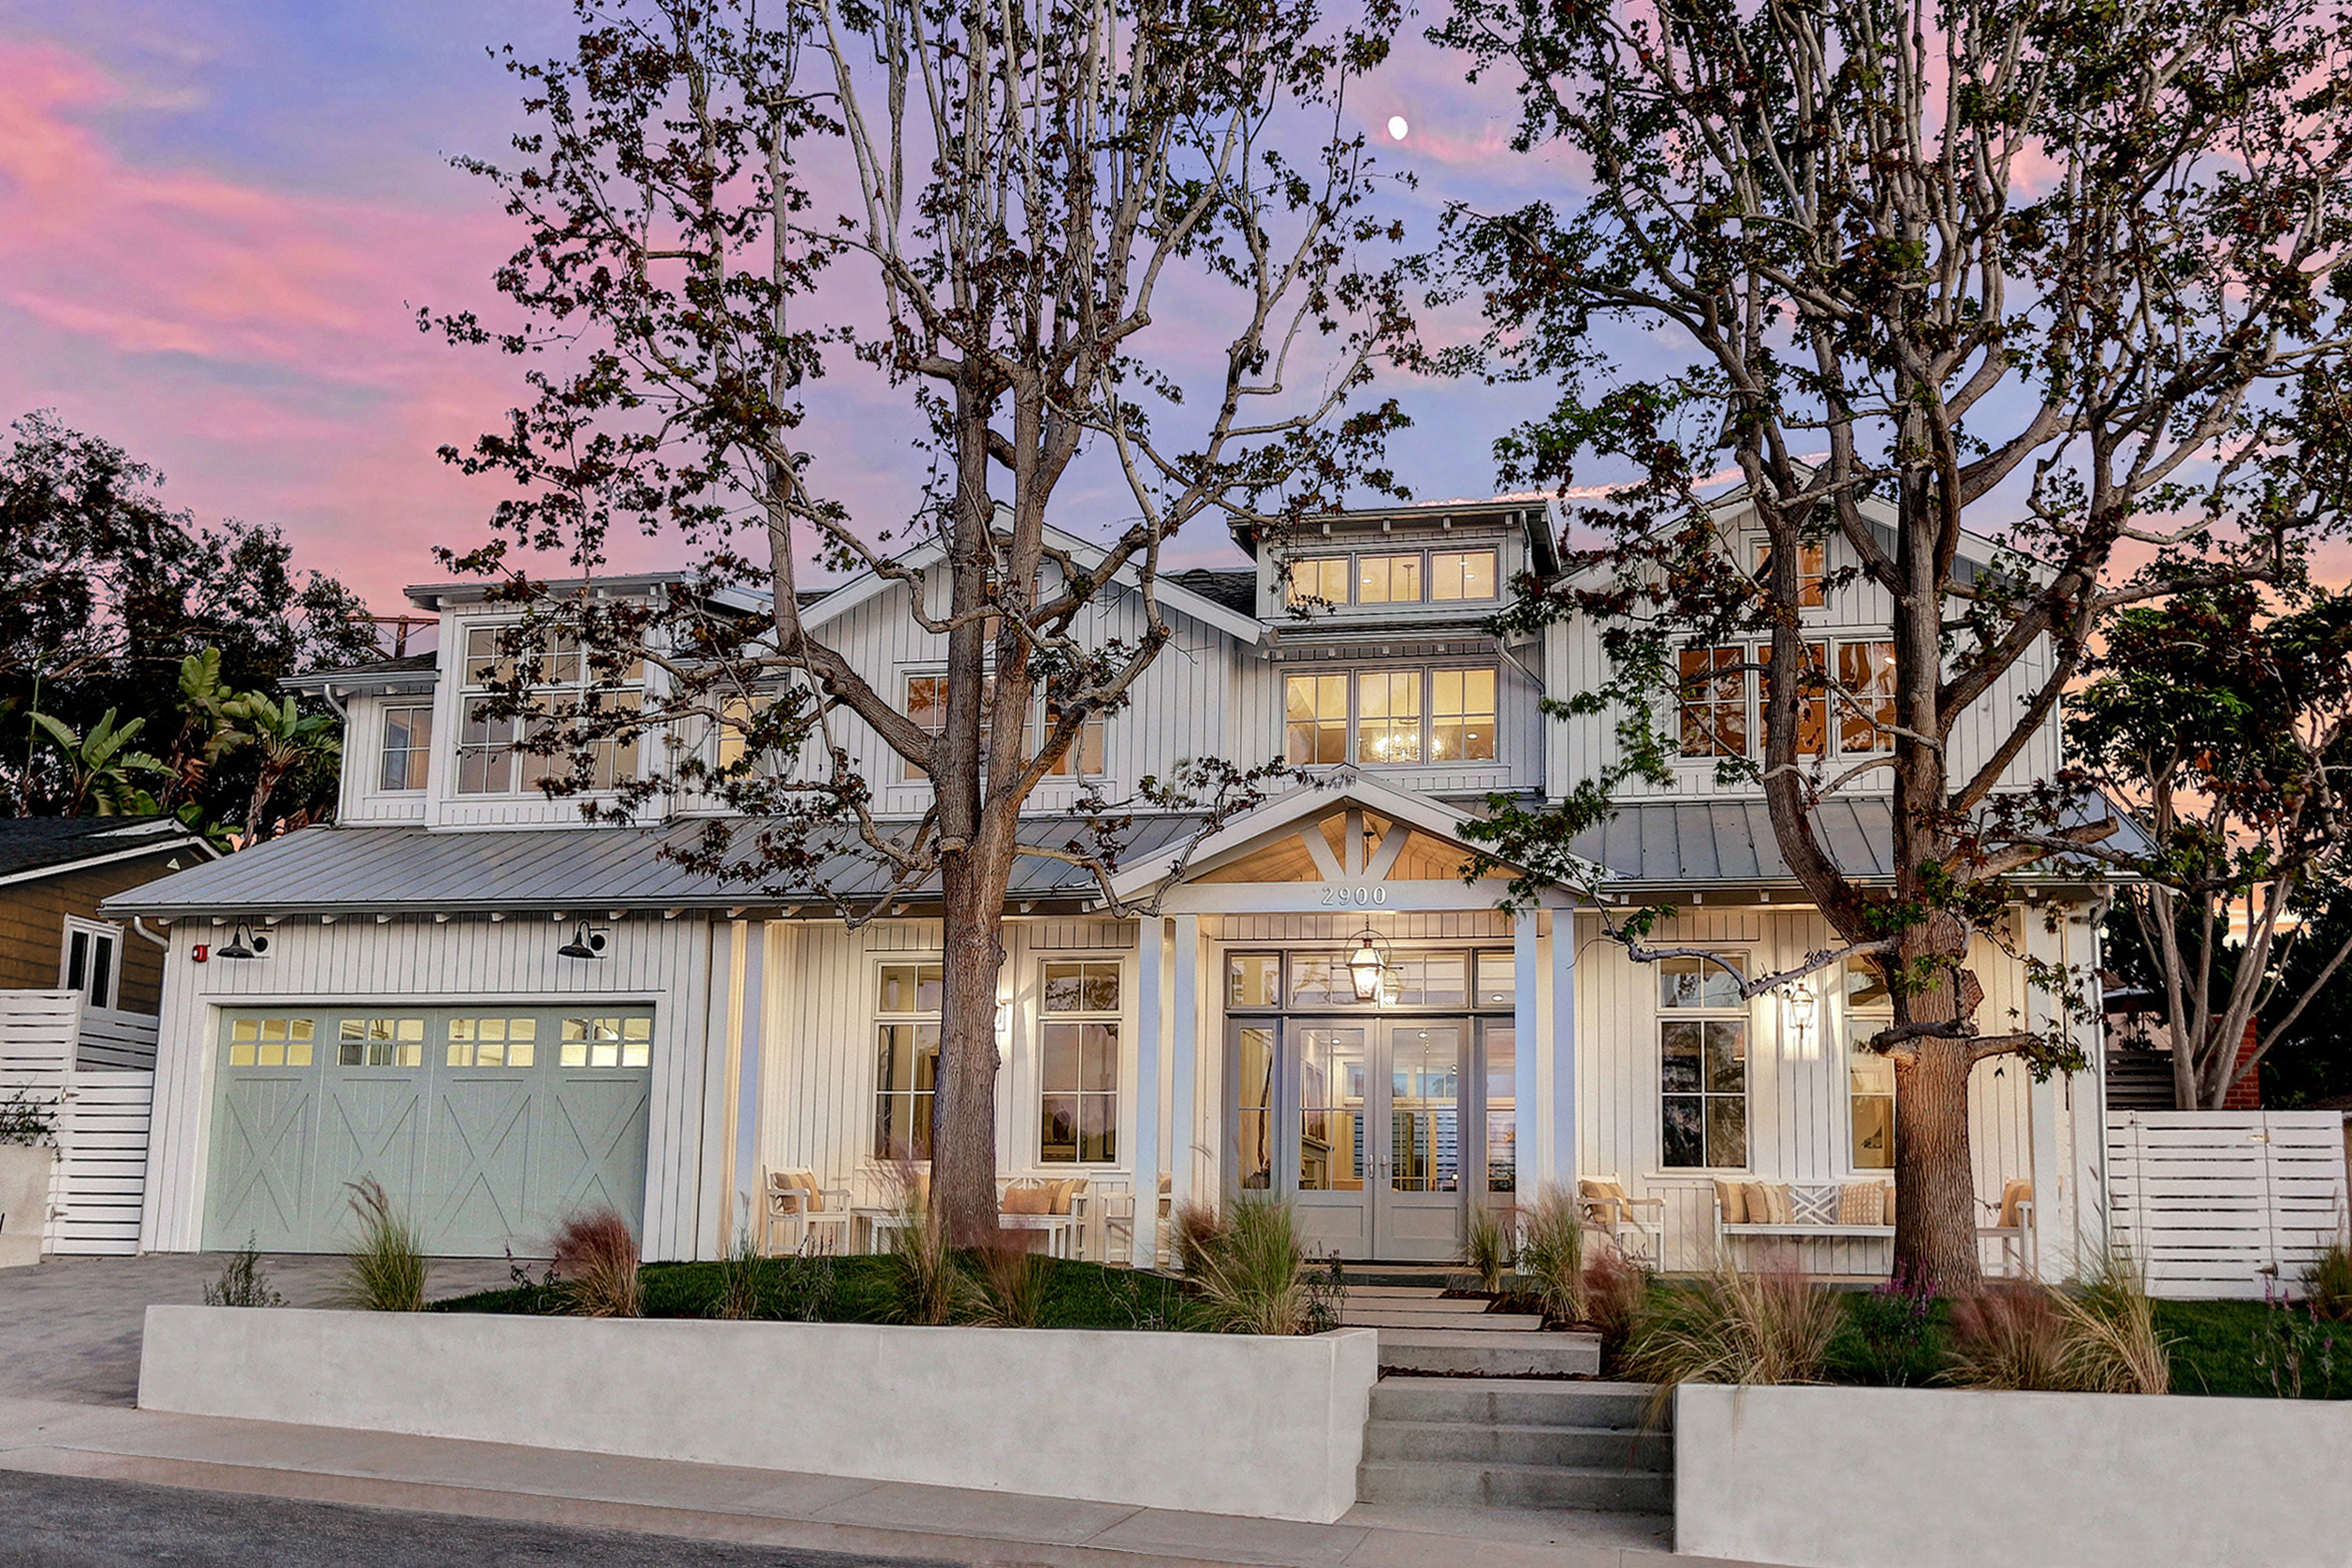 New custom house in the tree section of manhattan beach california custom built and interior design by titanco